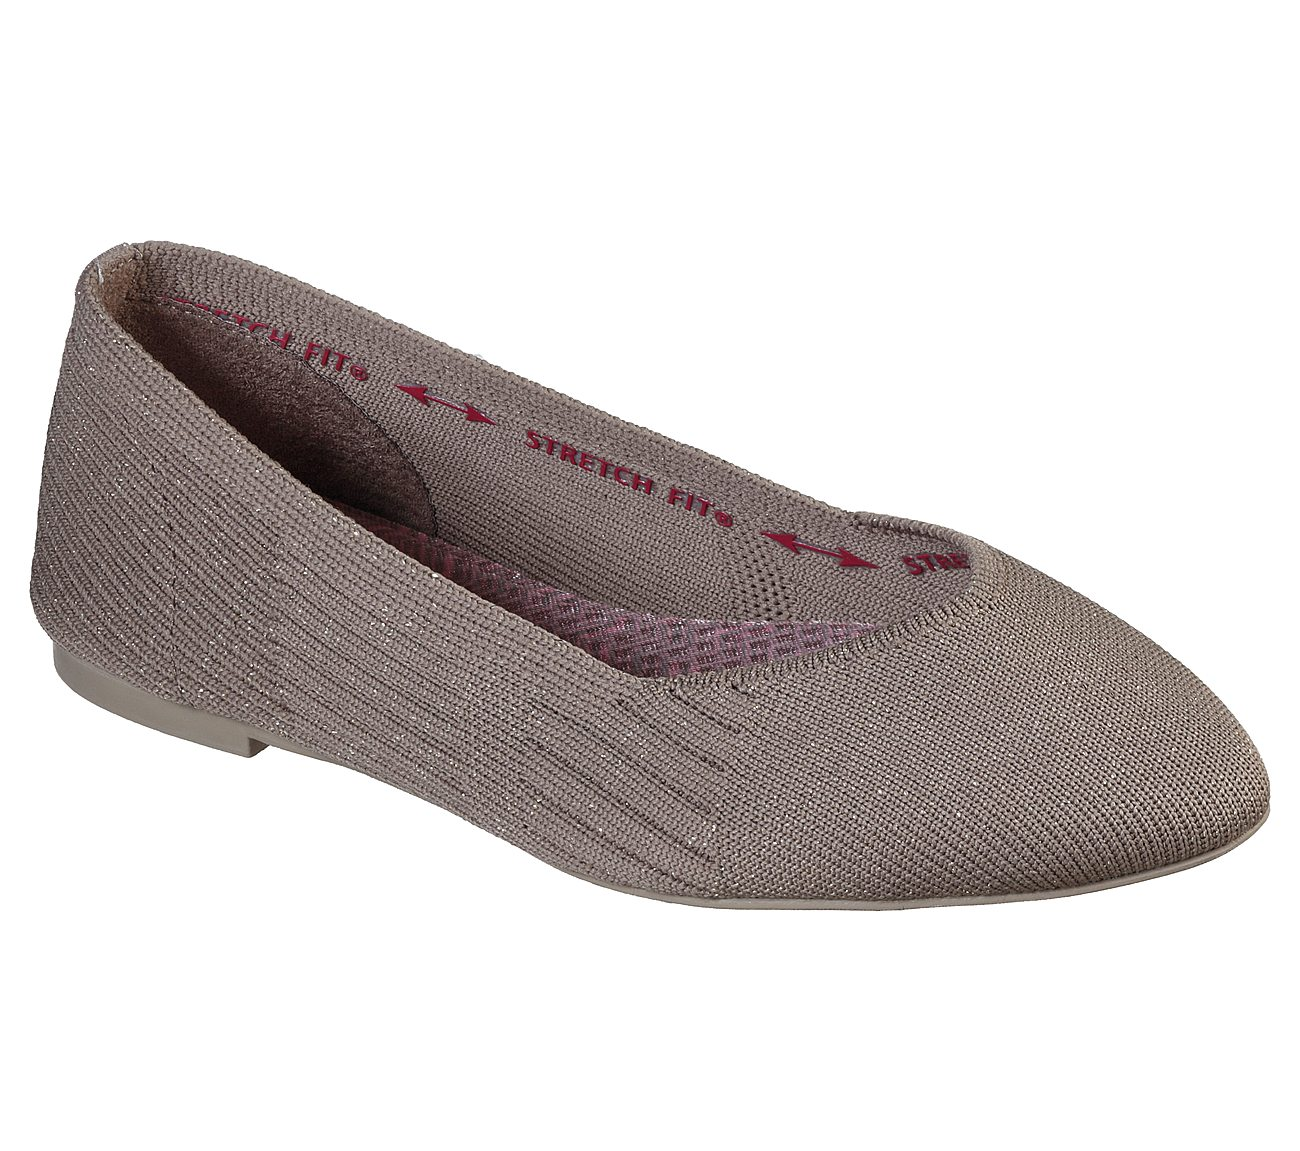 Buy Skechers Cleo Crave Modern Comfort Shoes